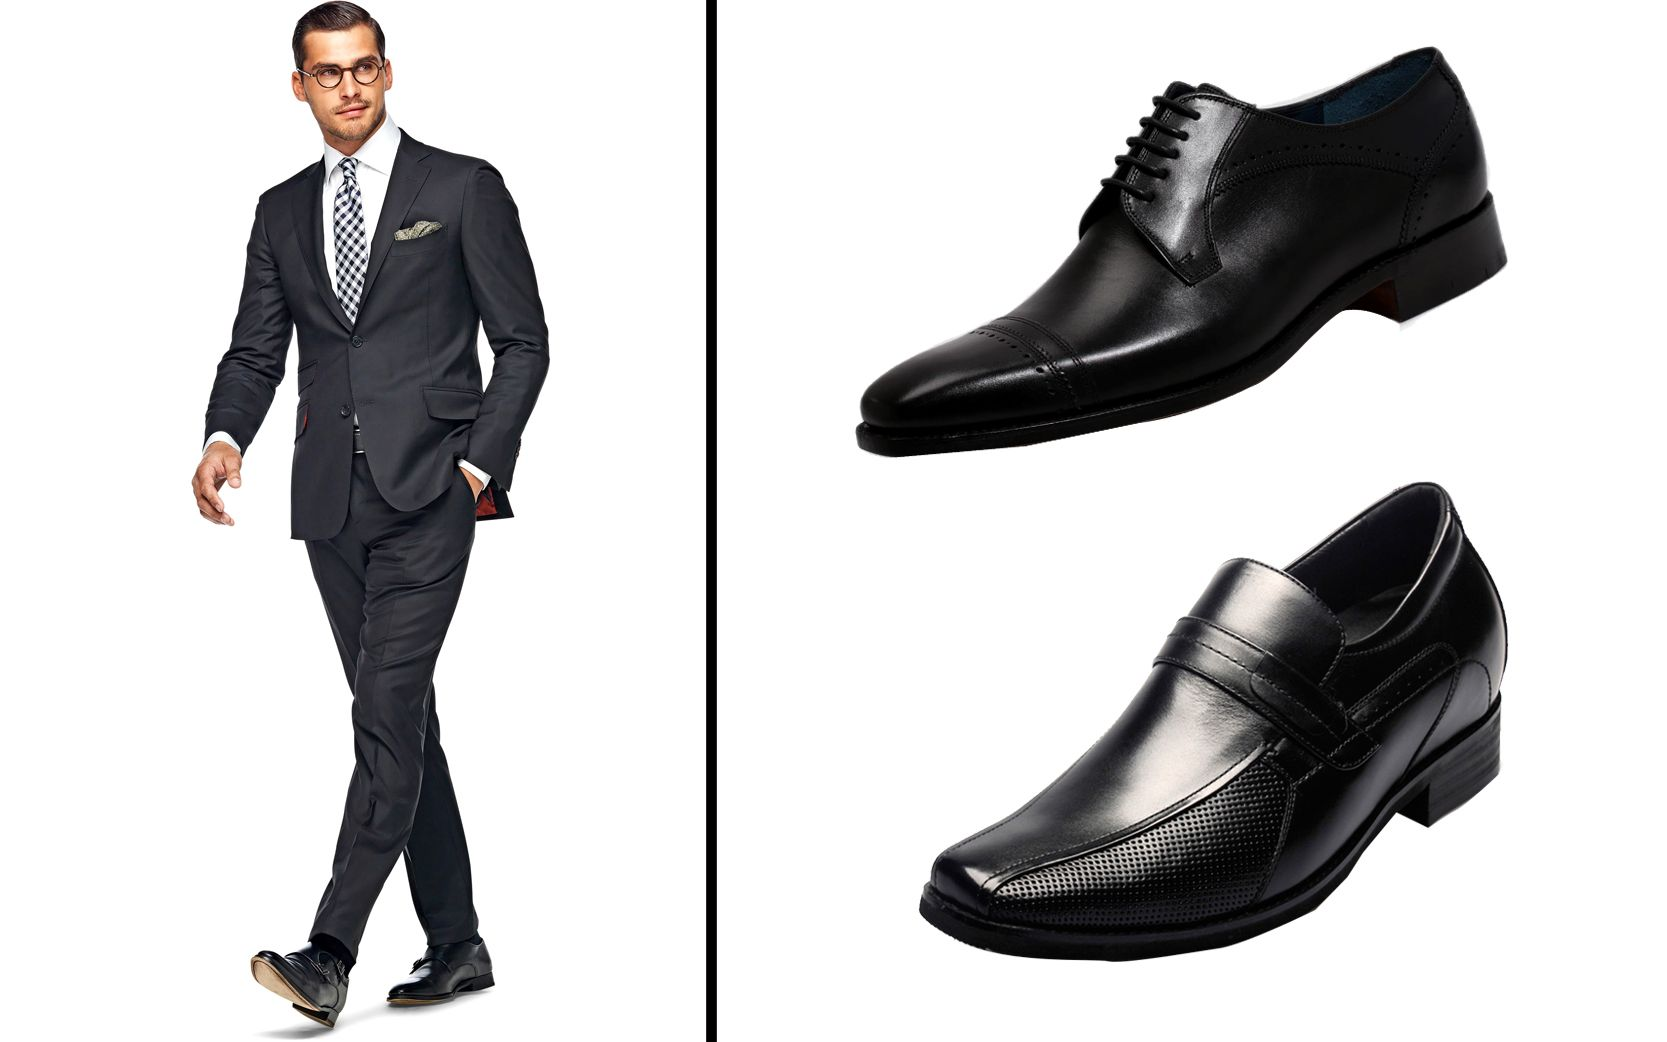 Shoes With Black Suit Dress To Kill Pinterest